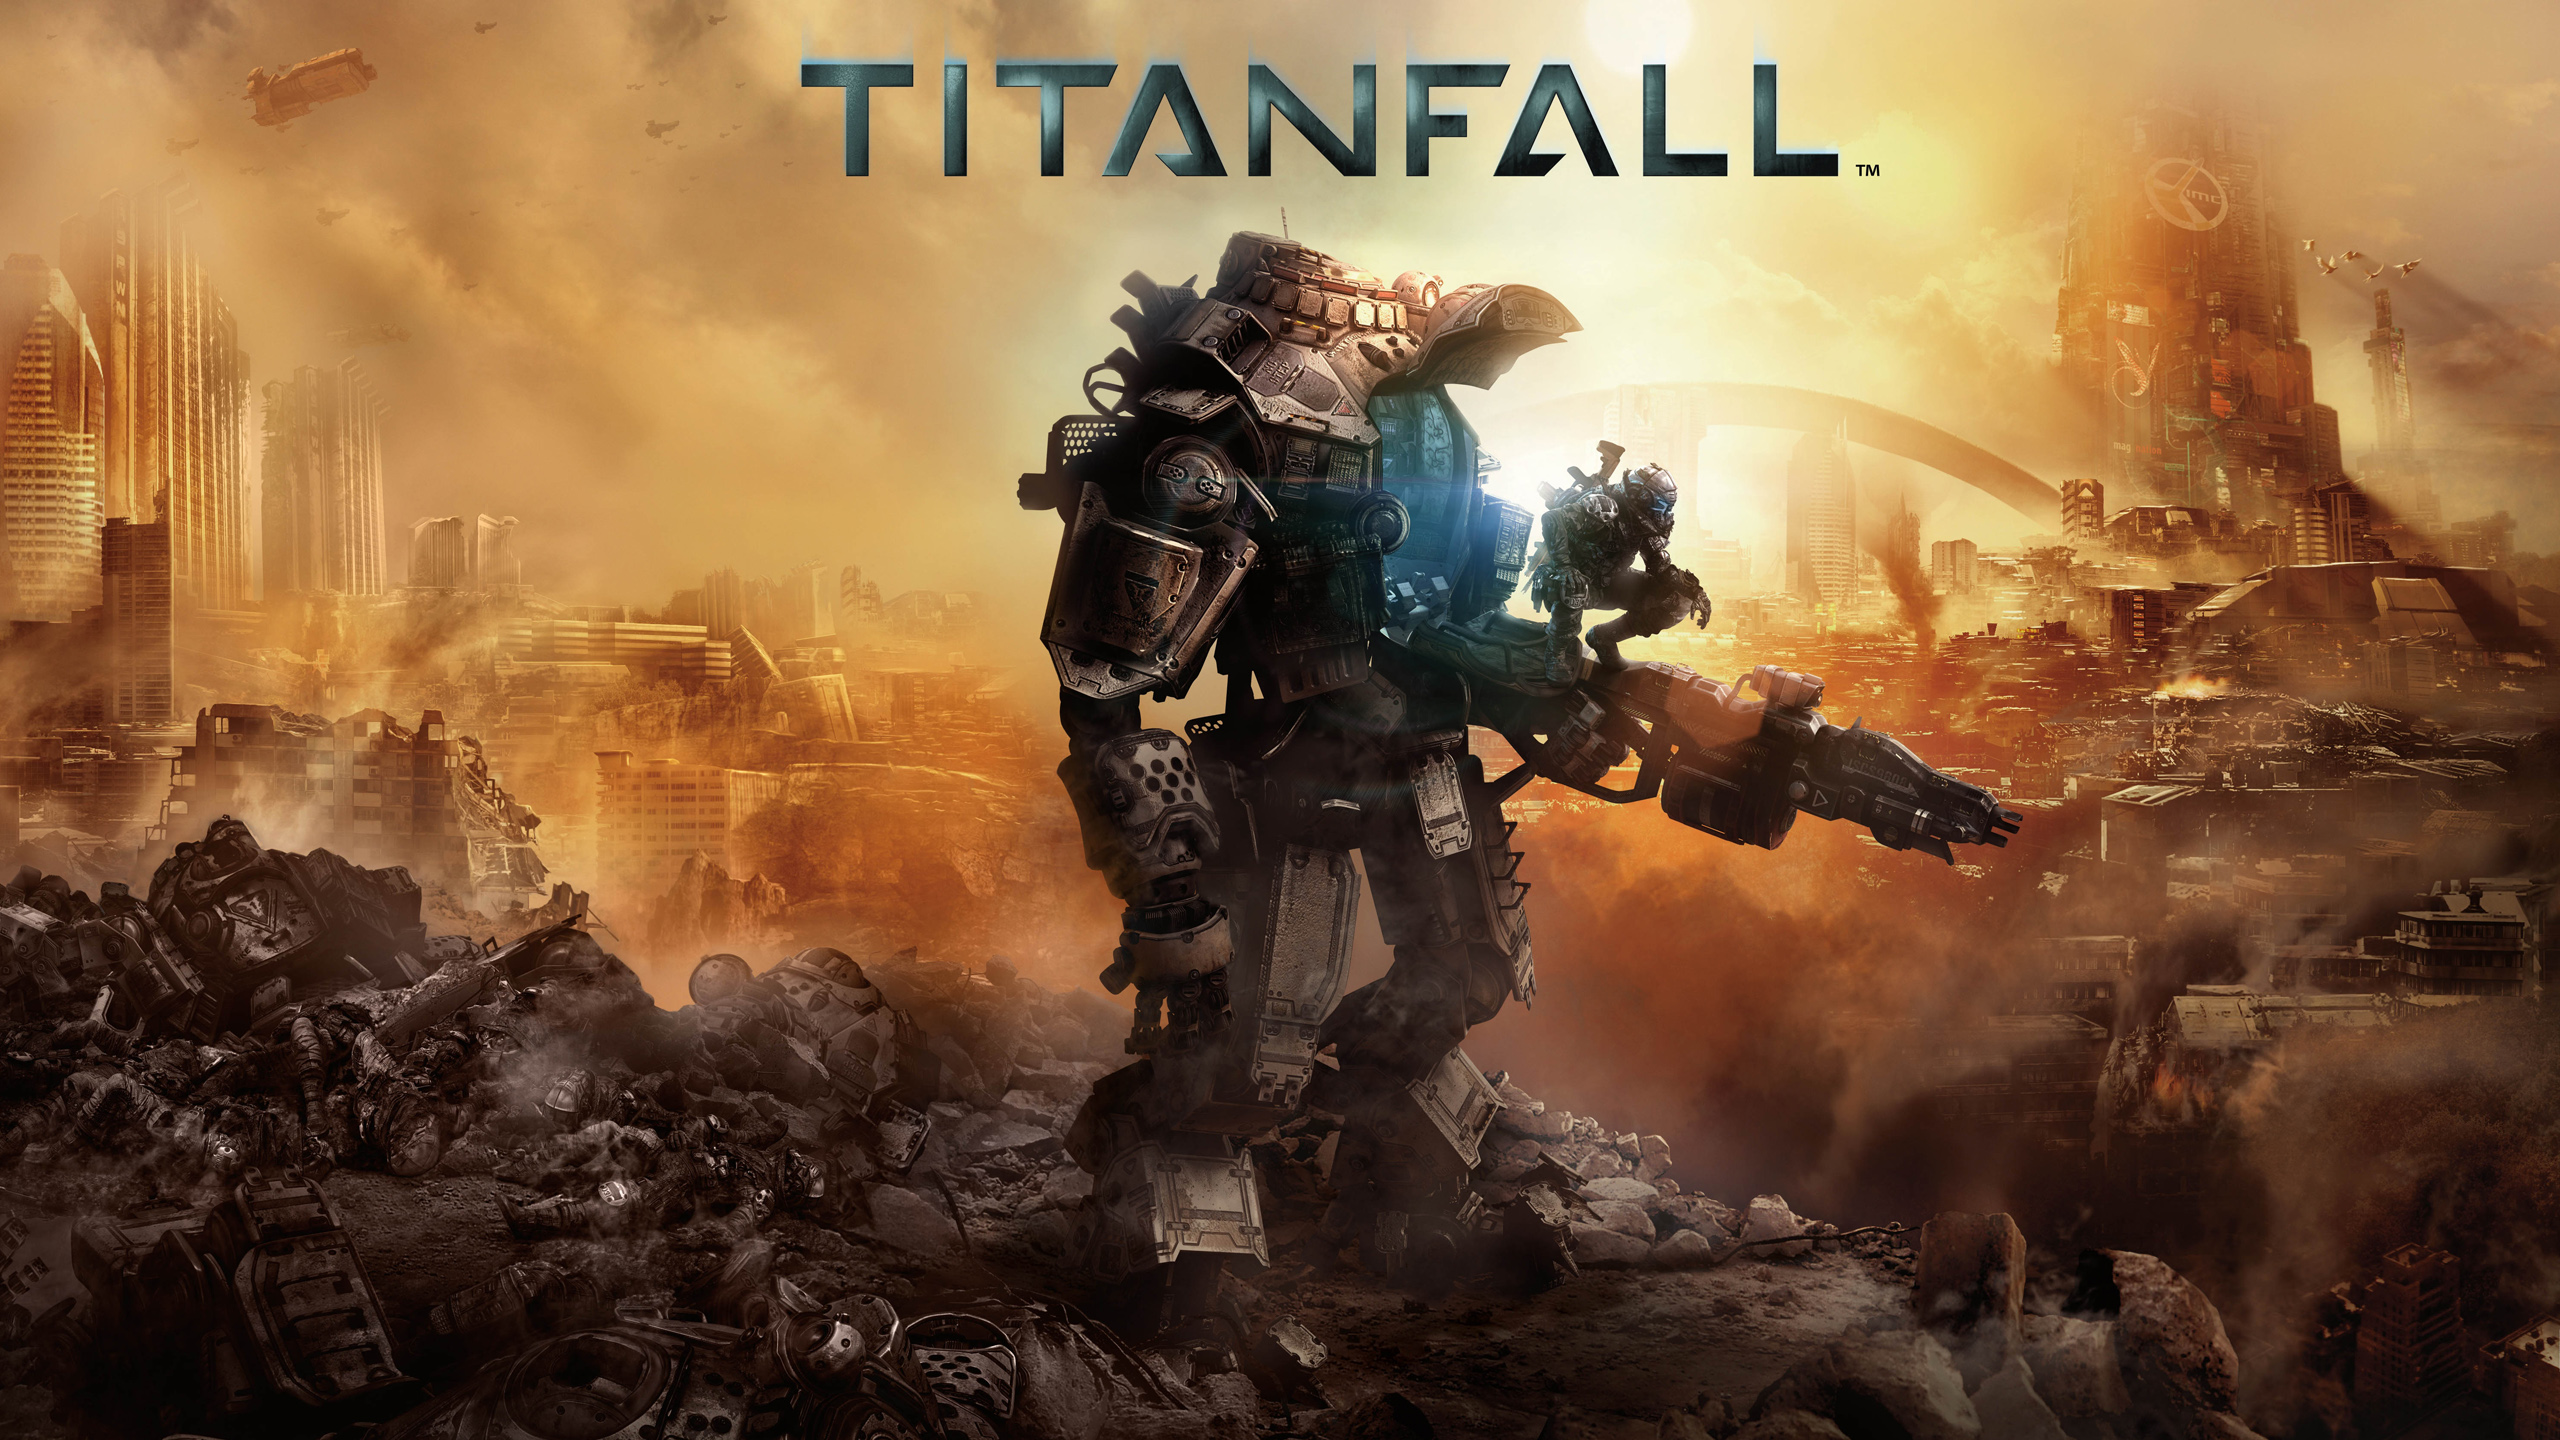 Titanfall 2014 Game Wallpapers HD Wallpapers 2560x1440